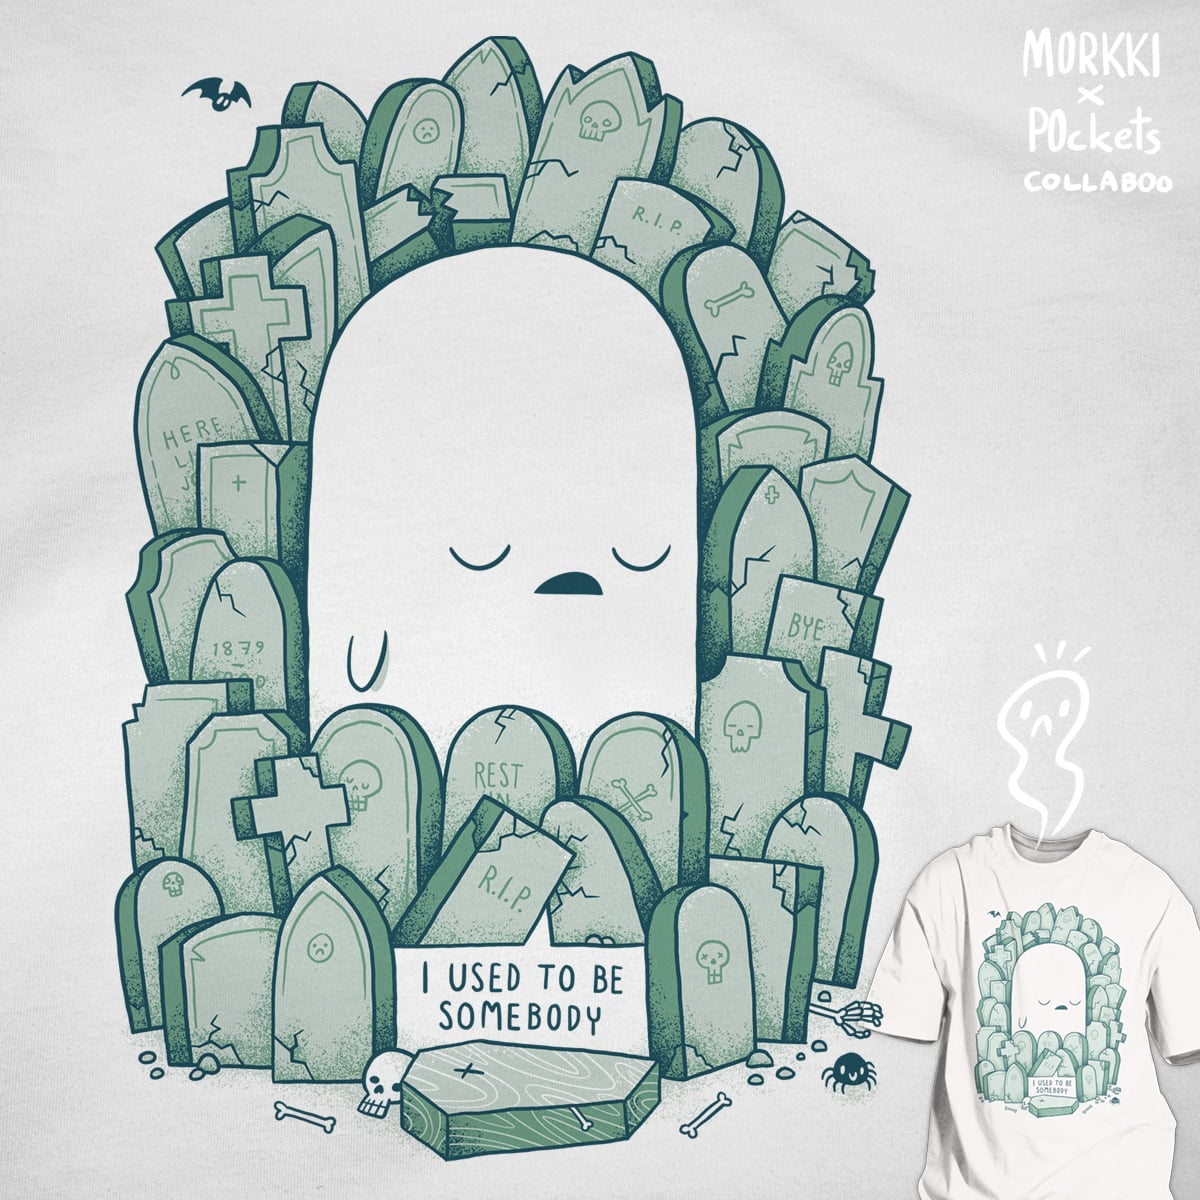 Dispirited by Morkki and P0ckets on Threadless